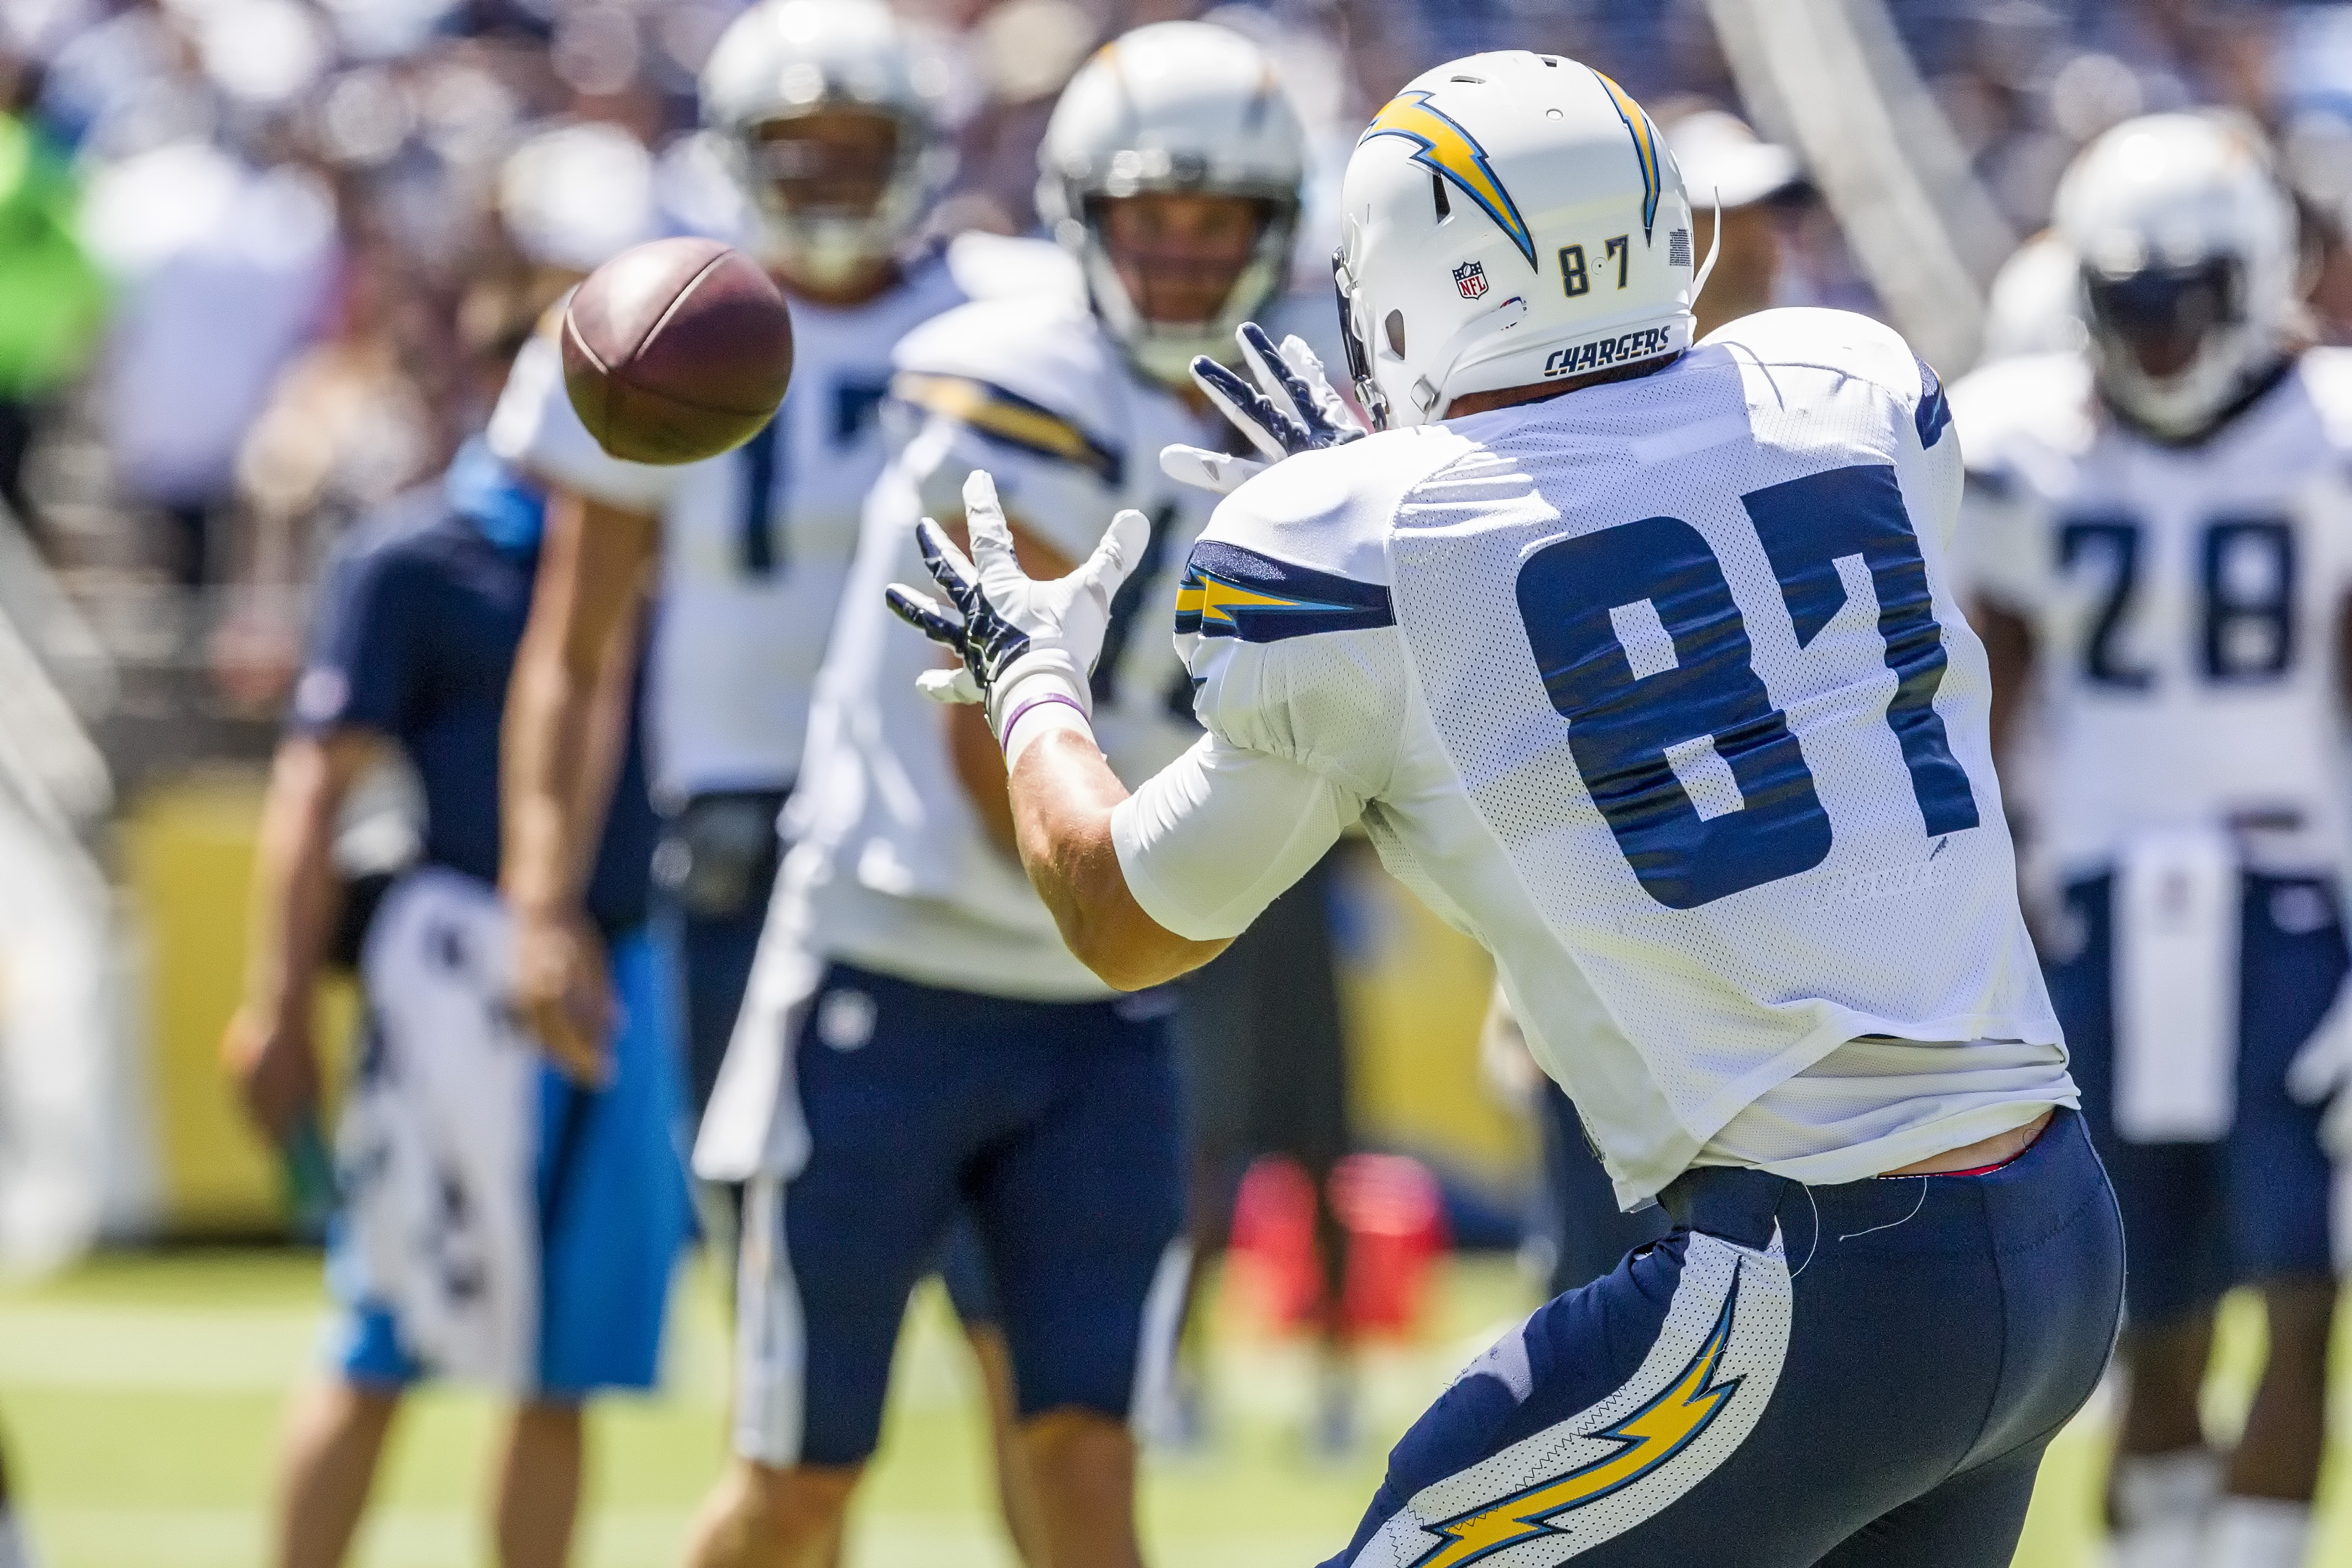 San Diego Chargers rookie tight end Brian Parker [87] catches a Philip Rivers pass during Fan Fest 2015. Photo by Bill Reilly